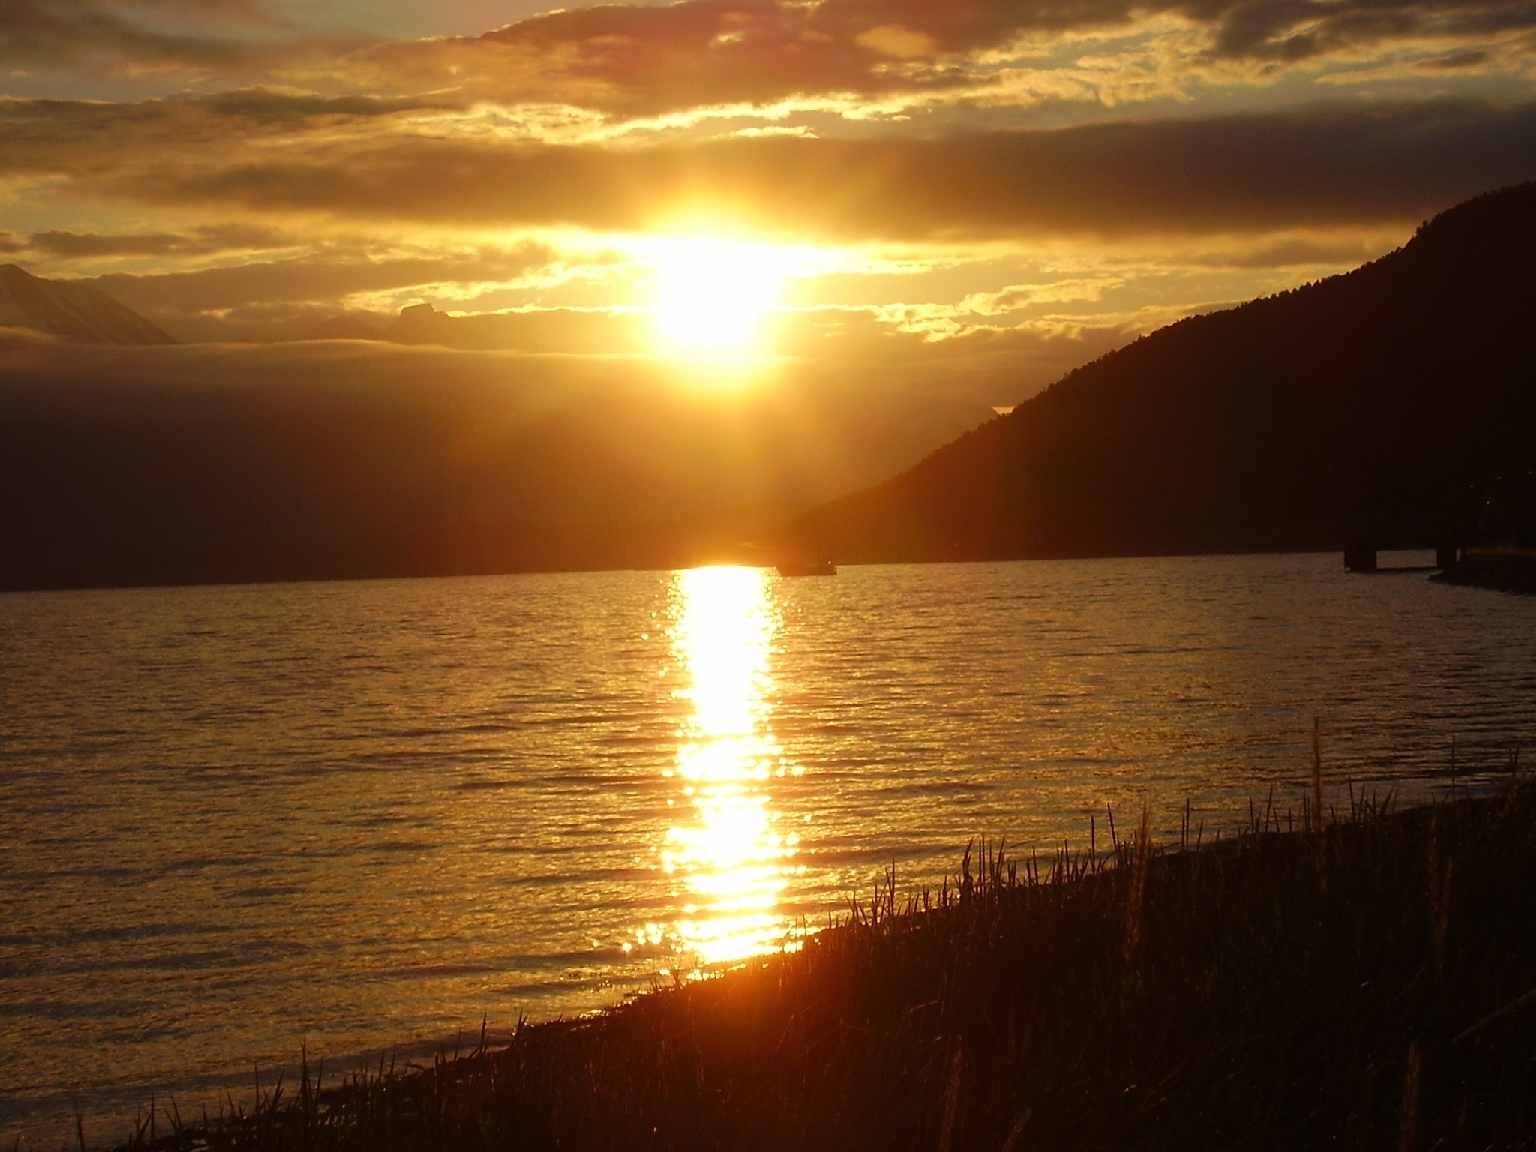 Experience the midnight sun during the longest day of the year.